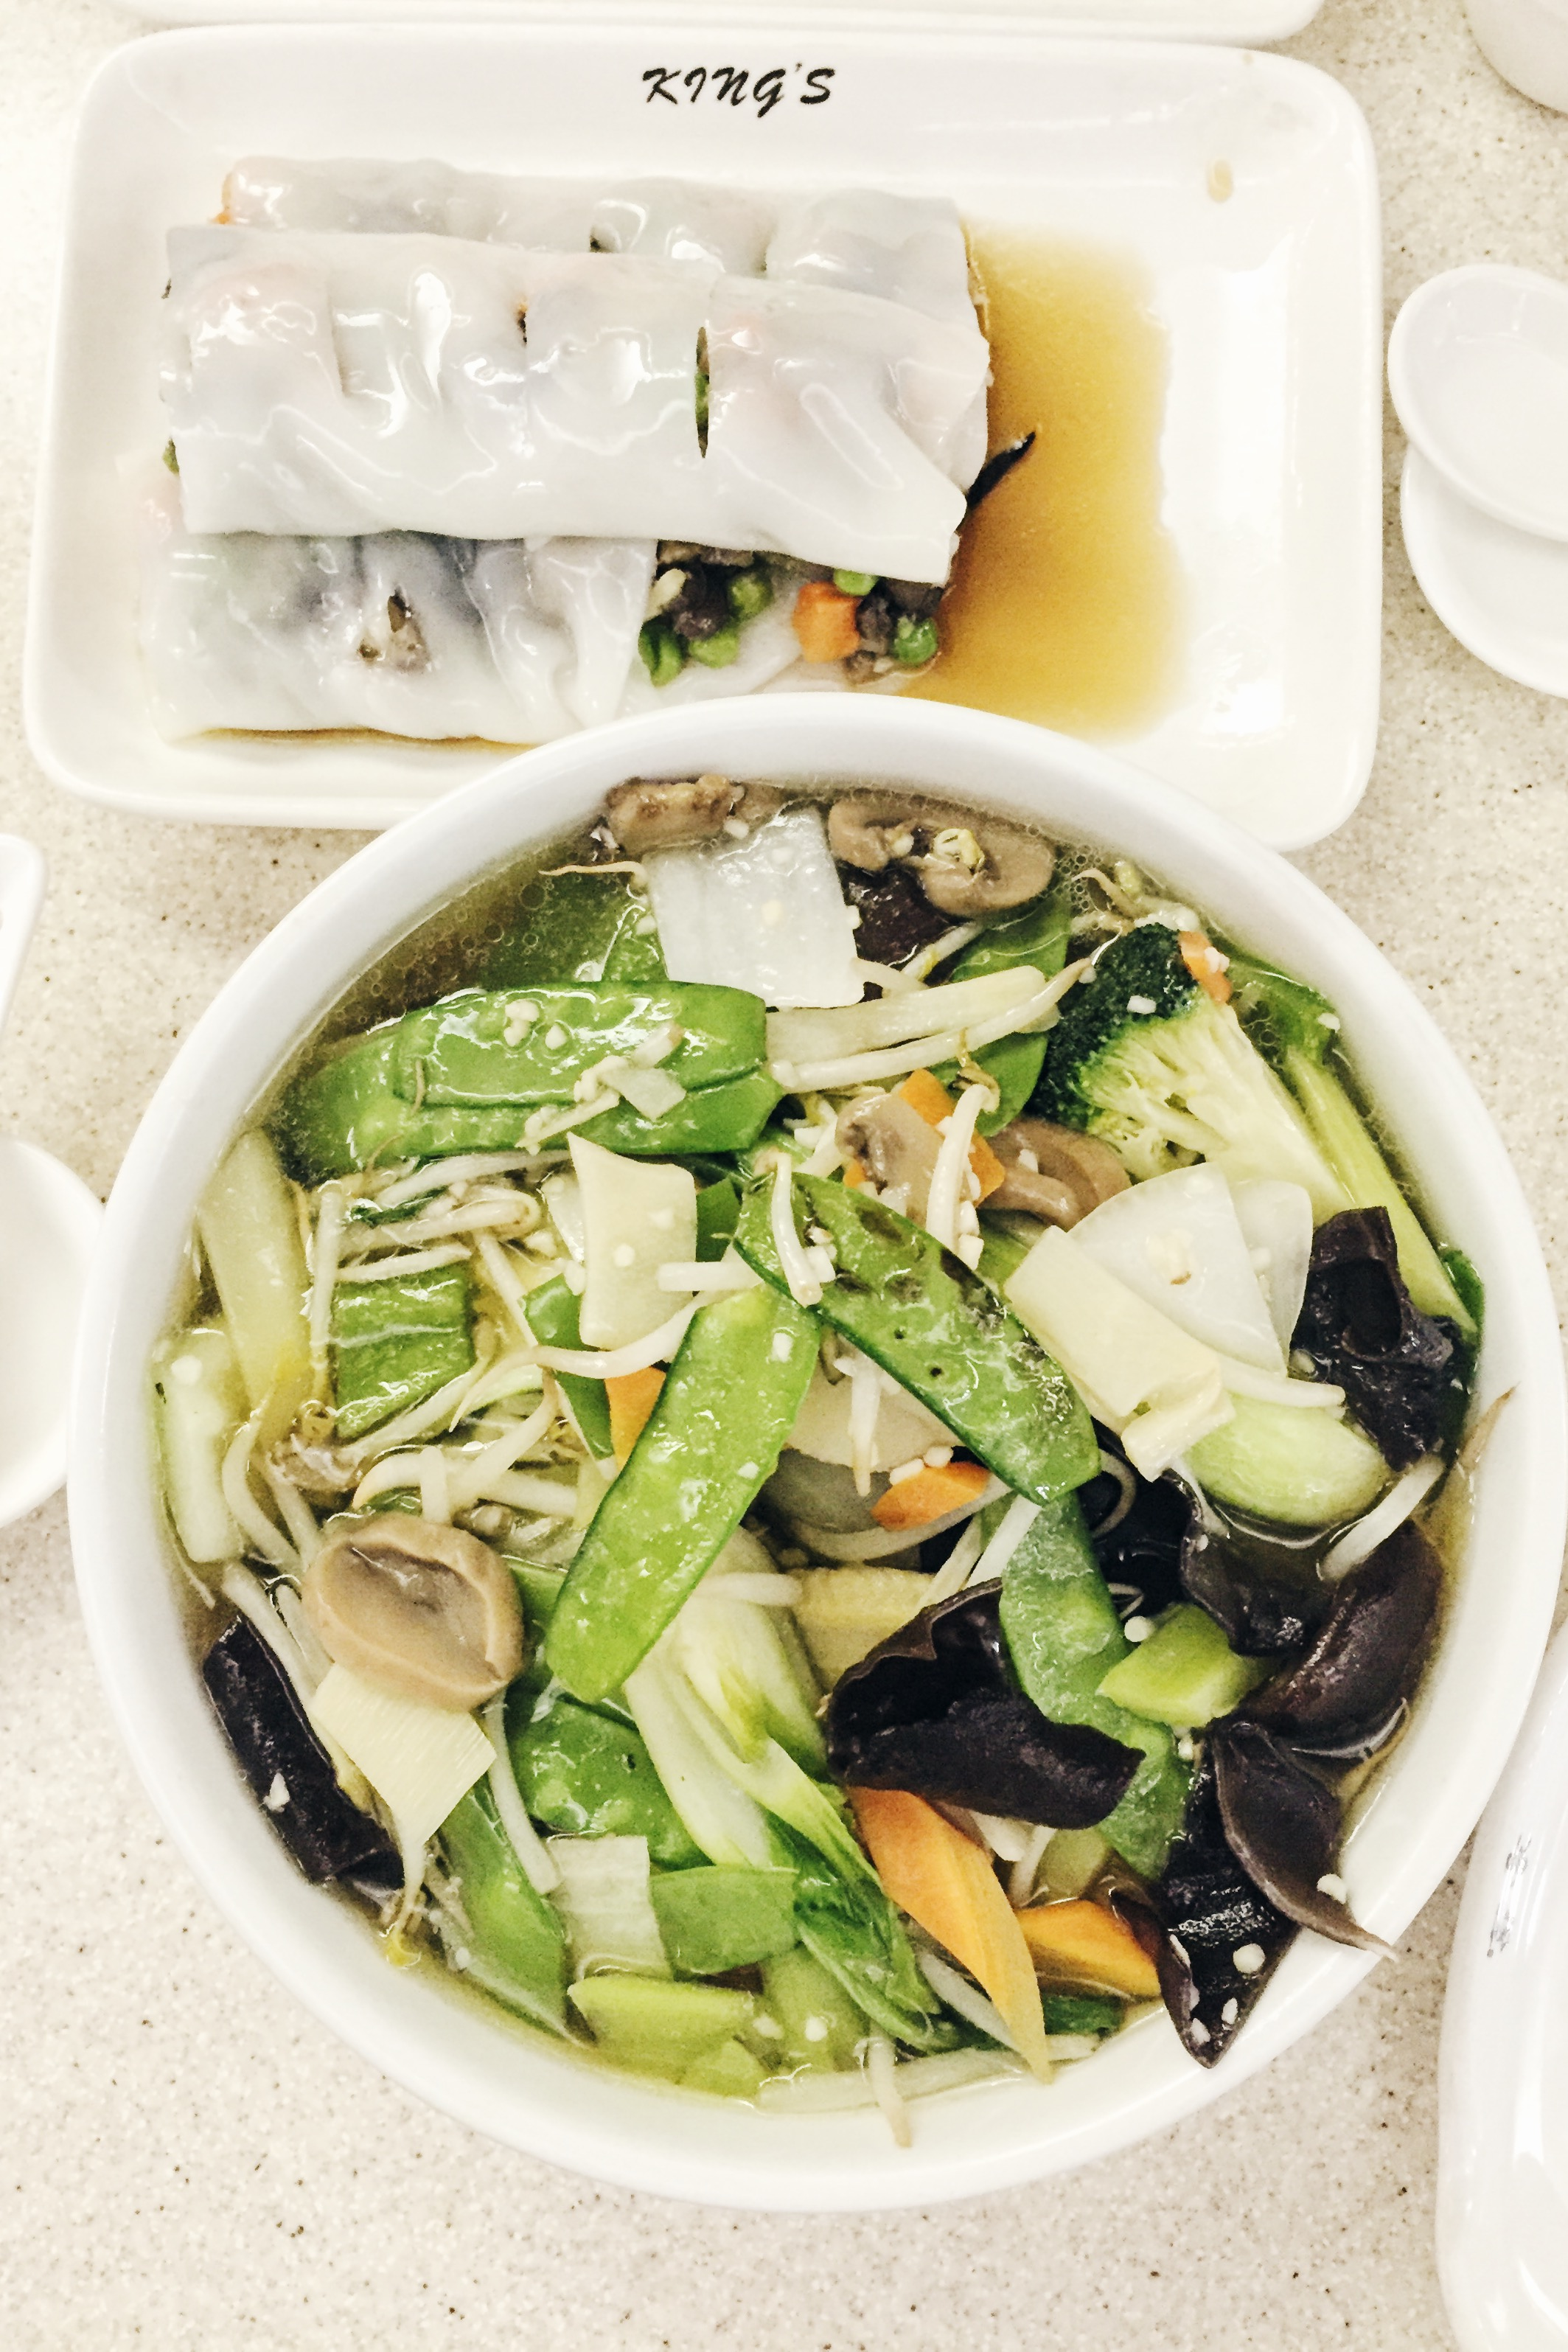 Mixed Vegetables in Noodle Soup